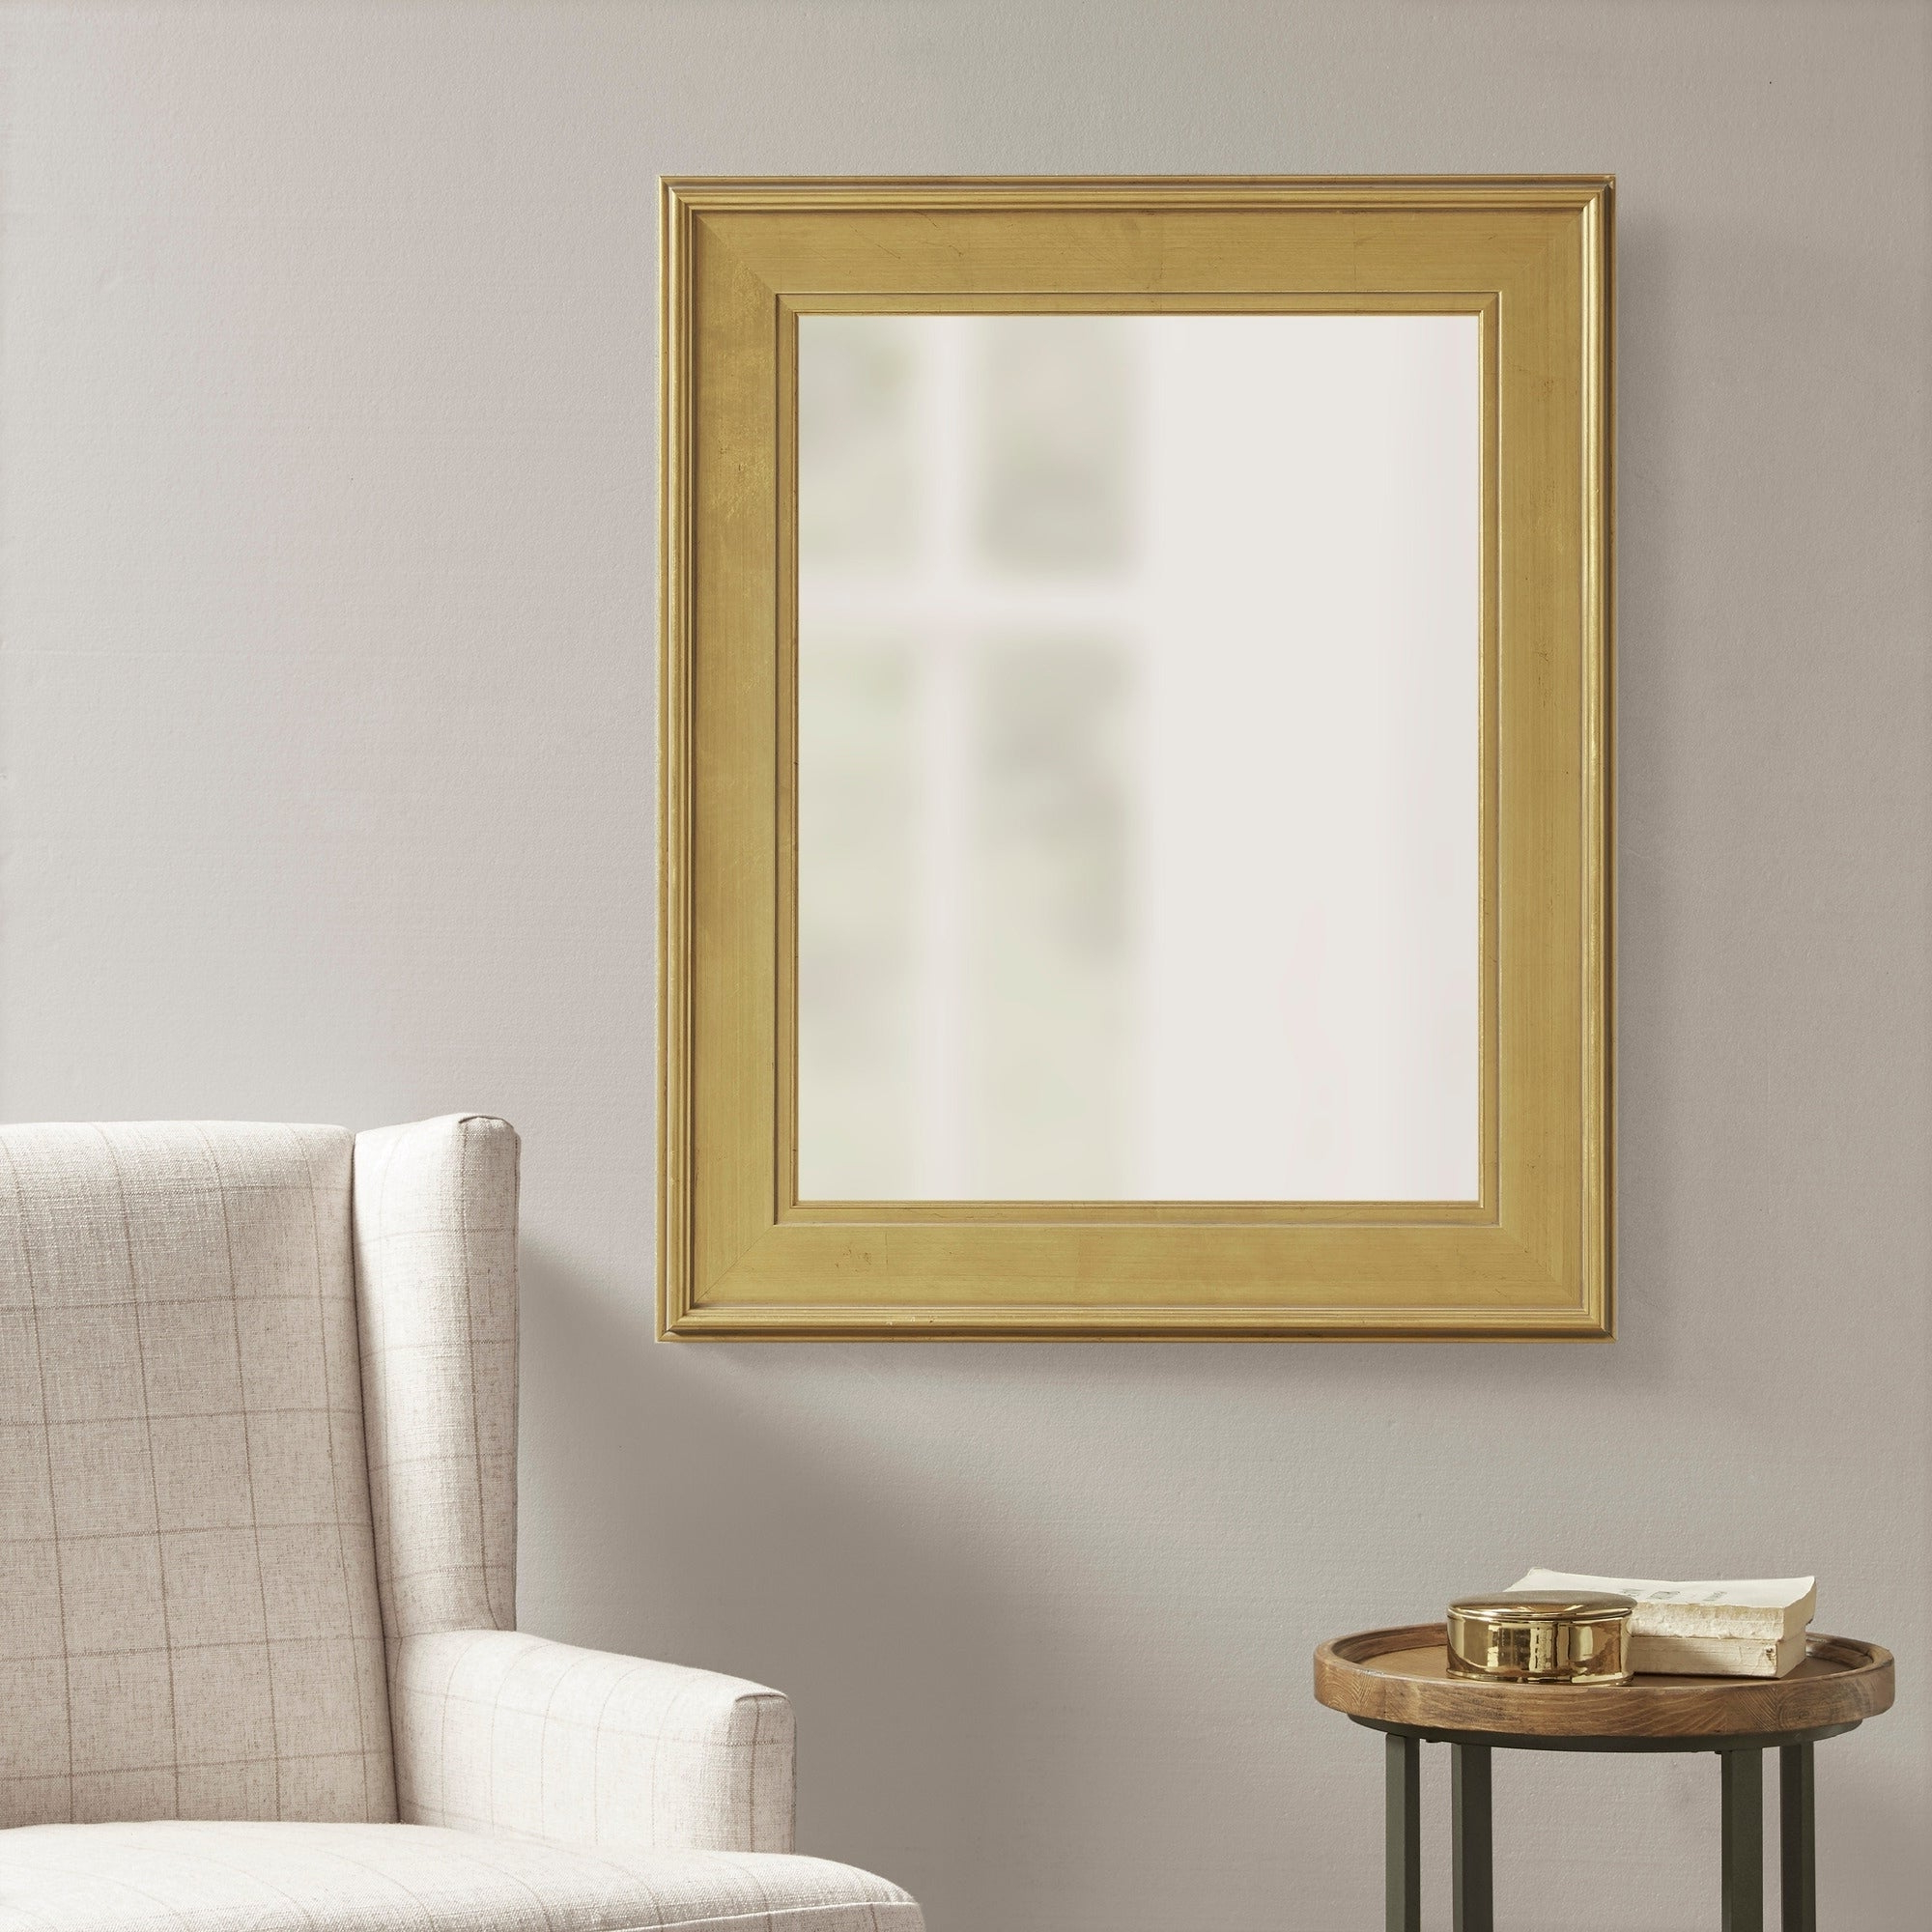 Newest Martha Stewart Westchester Antique Gold Rectangle Accent Mirror – Antique Gold Pertaining To Reba Accent Wall Mirrors (View 17 of 20)